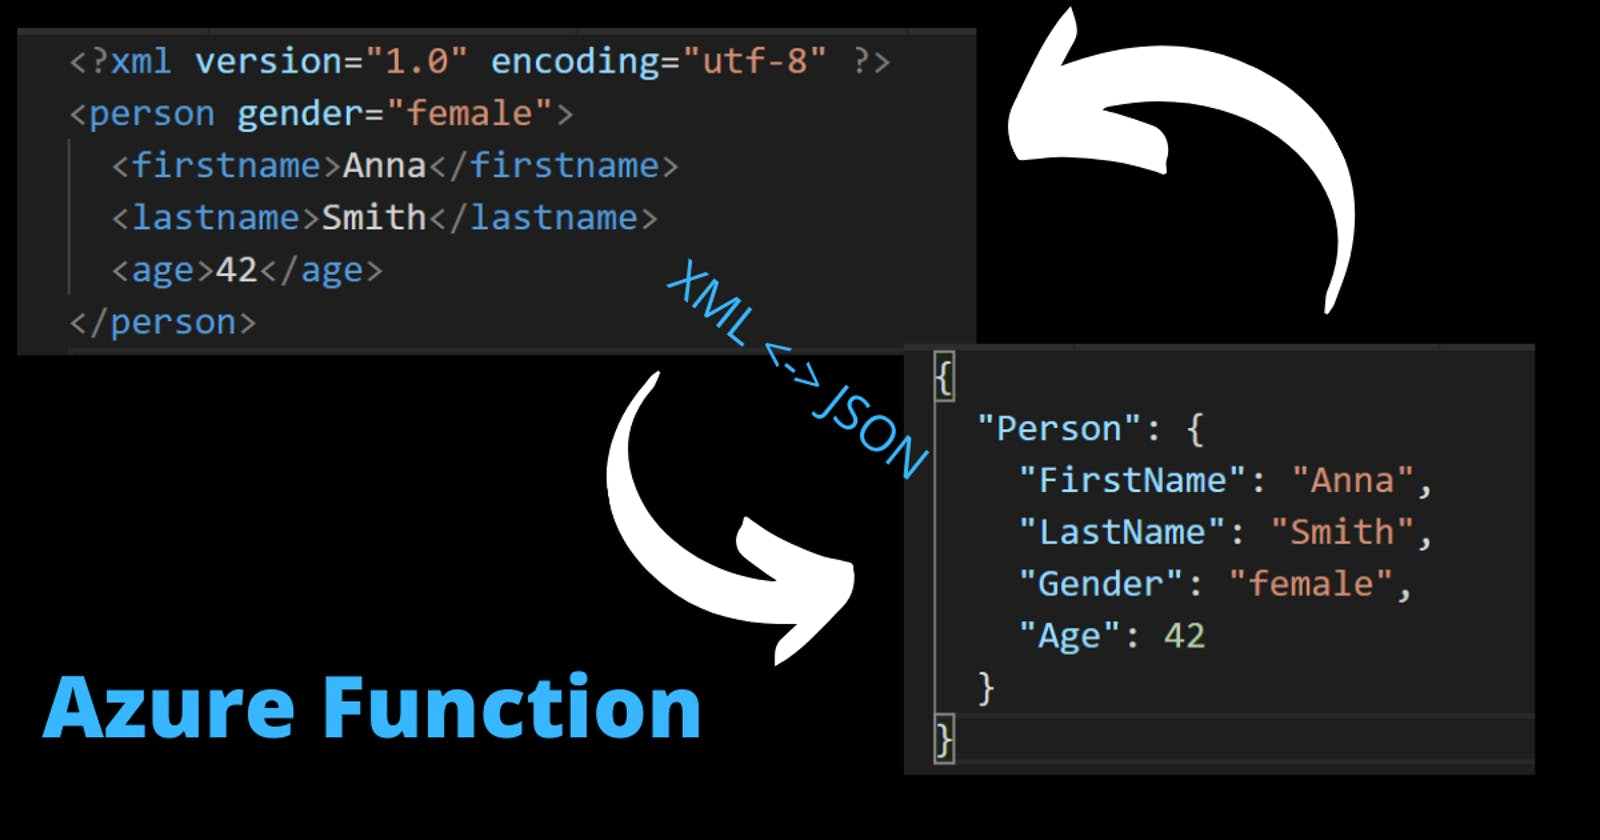 Transforming data: from JSON to XML and XML to JSON